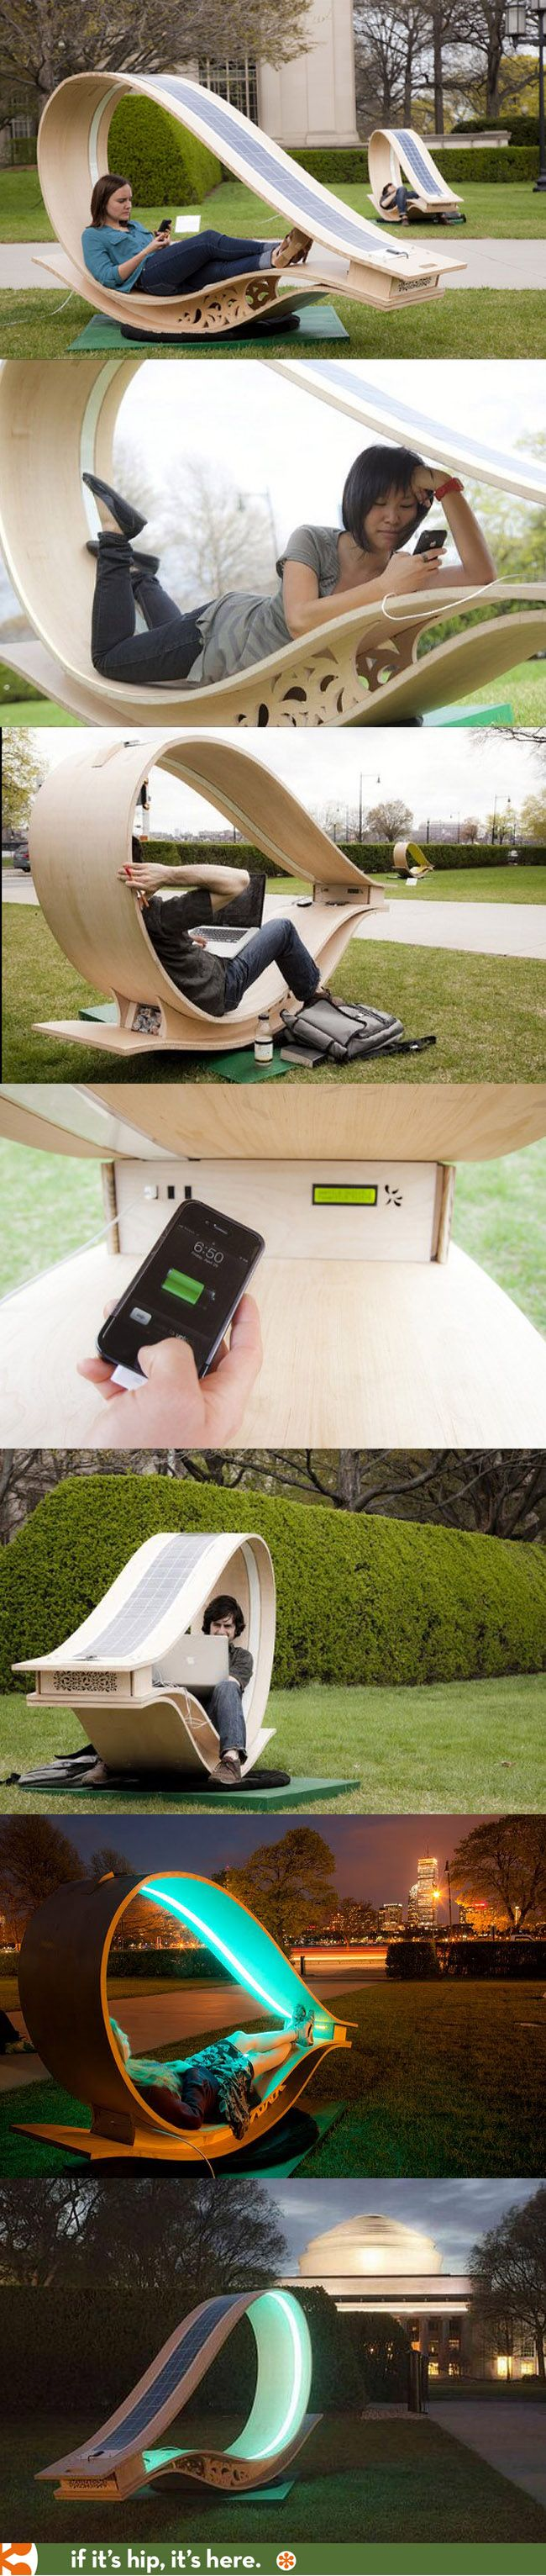 The Solar Powered Soft Rocker Workstation.